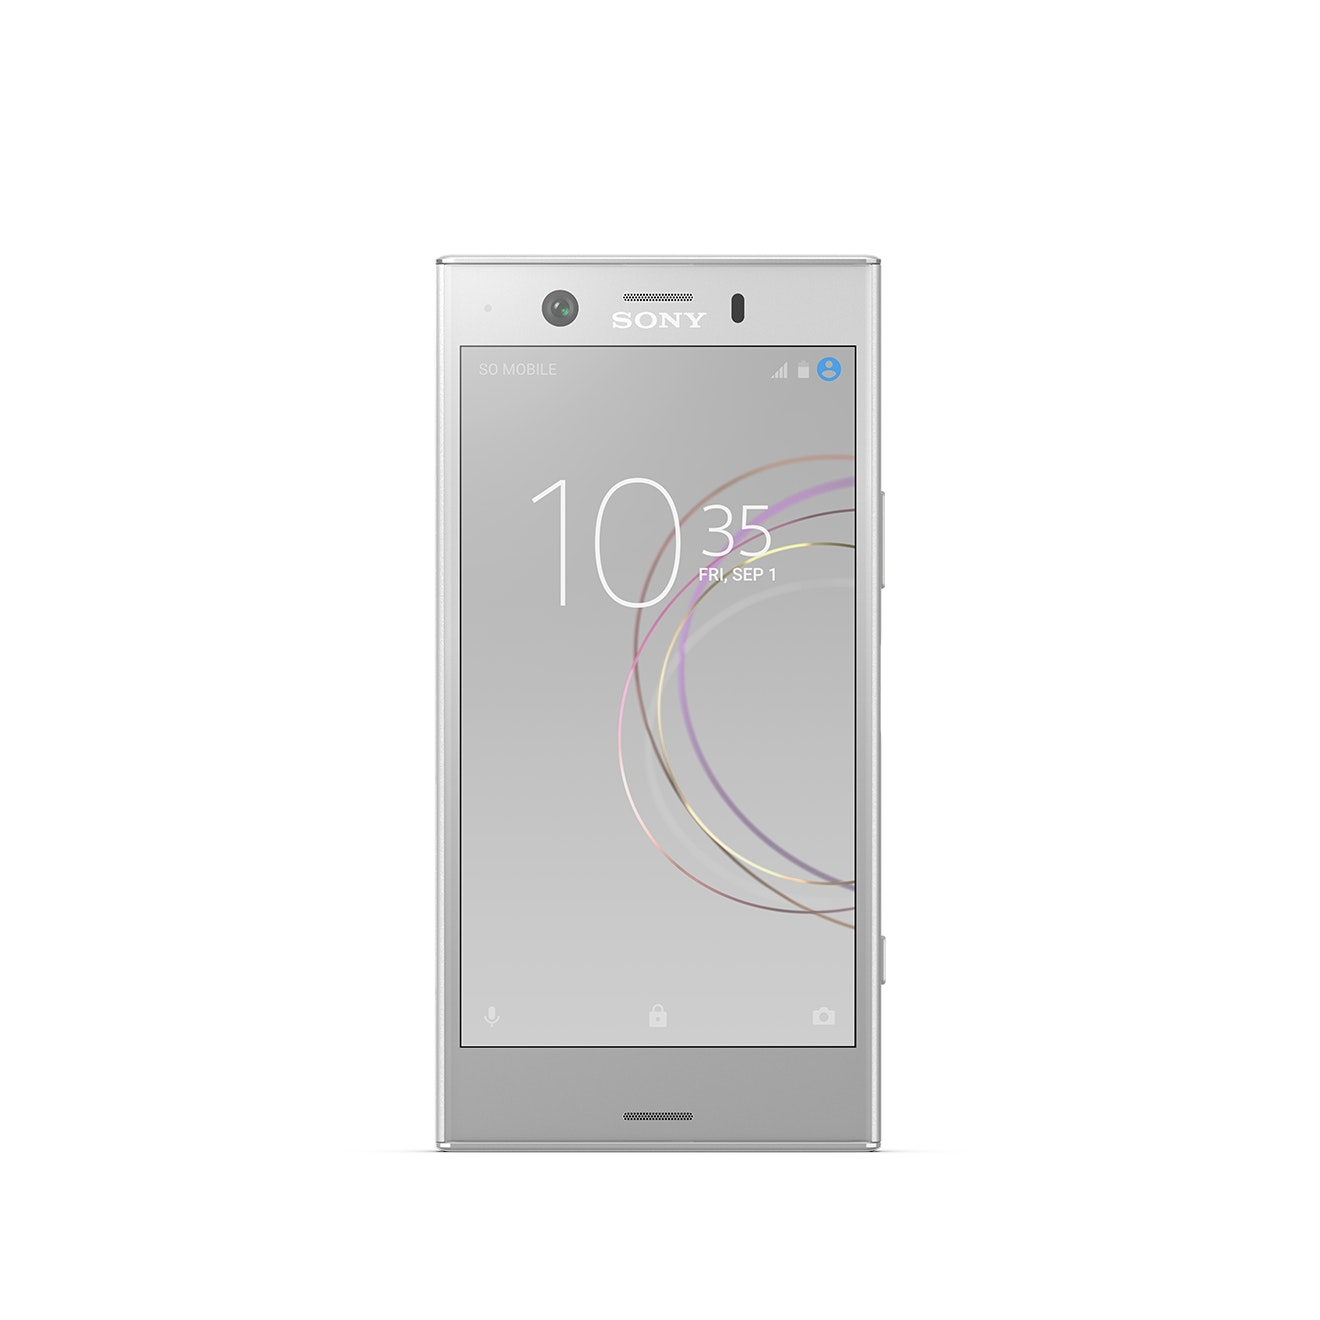 Xperia™ XZ1 Compact Official Website - Sony Mobile (United States)sony-logoacco